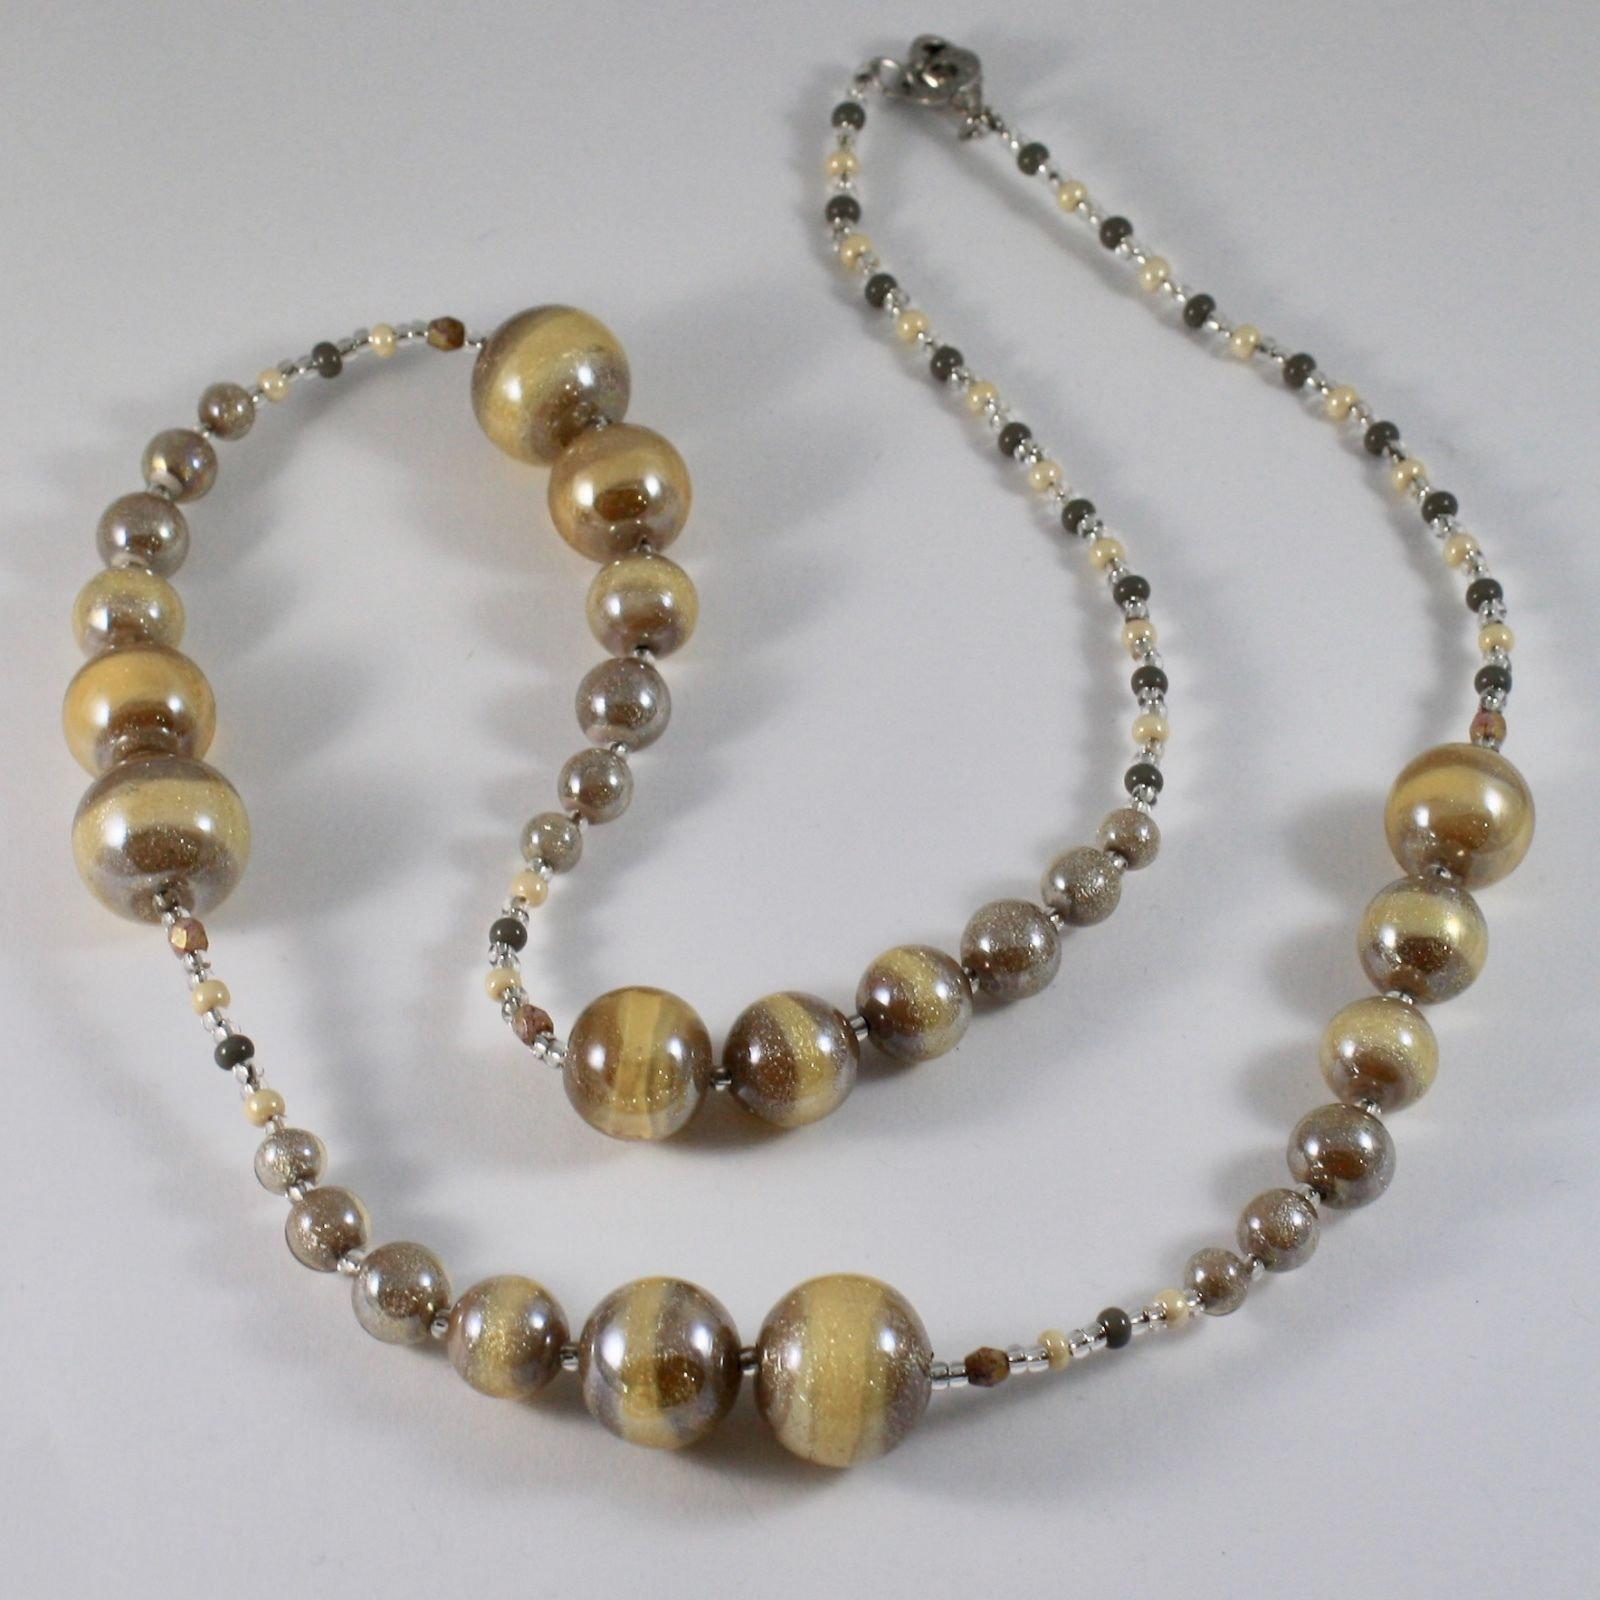 ANTICA MURRINA VENEZIA LONG NECKLACE WITH BROWN YELLOW MURANO GLASS BALLS. 30 IN